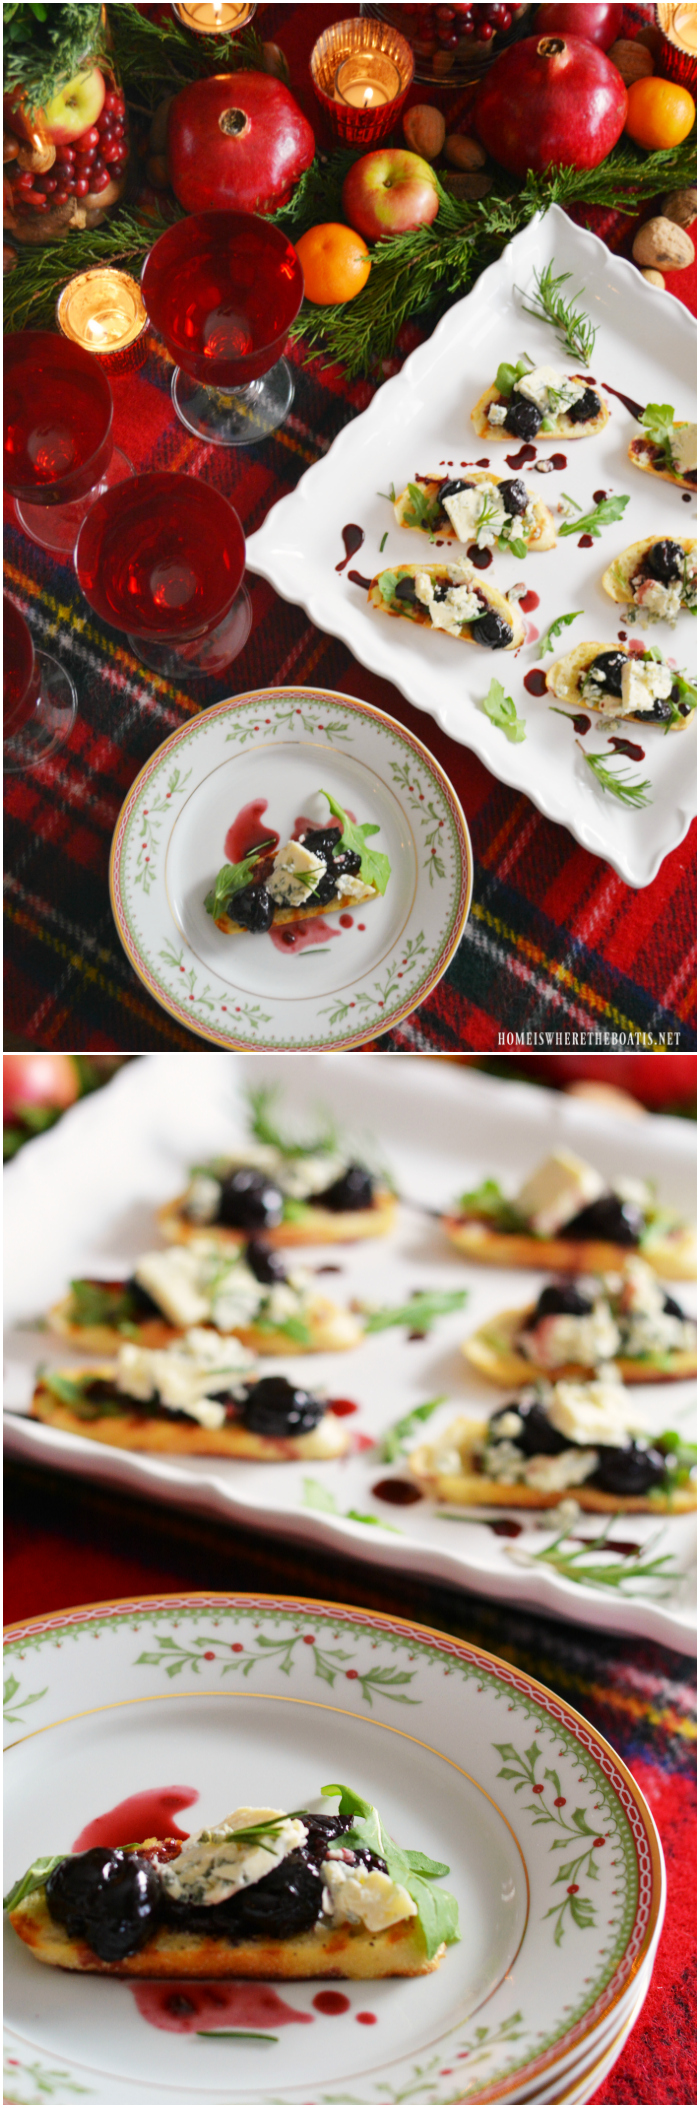 Honey-Rosemary Cherries and Blue Cheese Crostini! | ©homeiswheretheboatis.net #recipes #party #appetizer